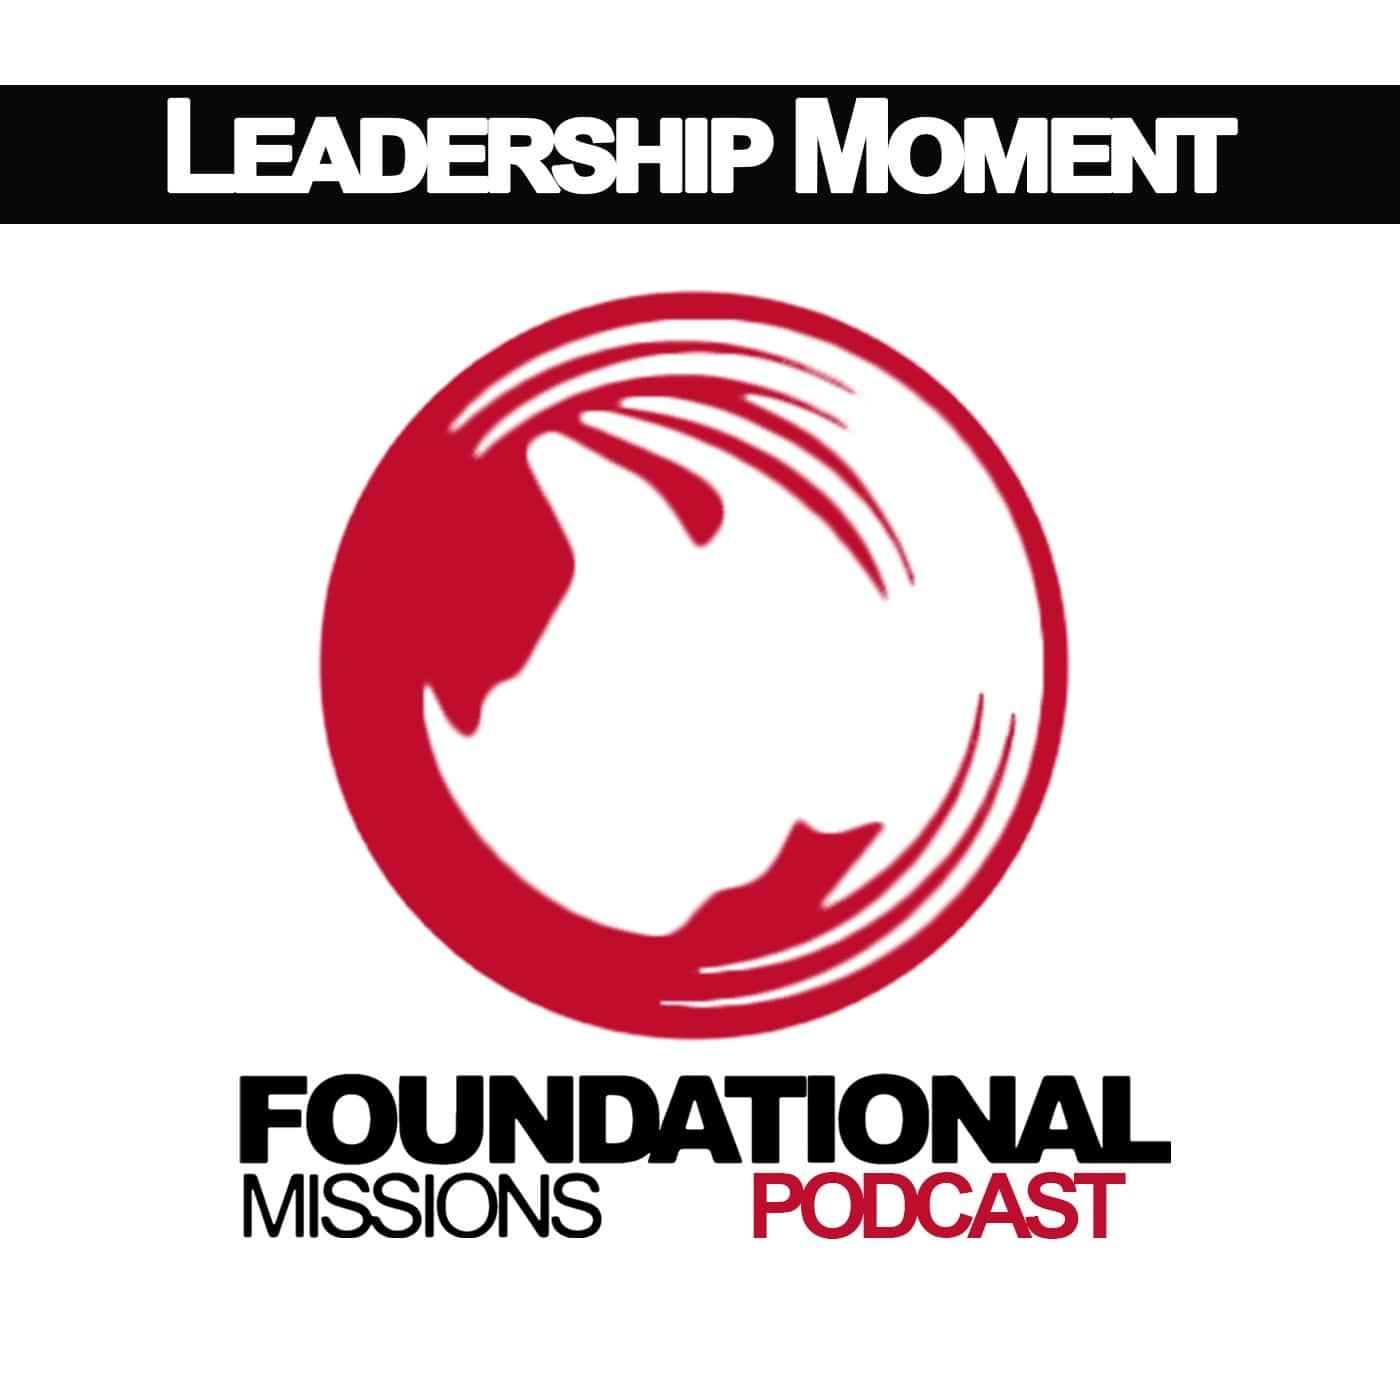 Artwork for On Location In Thailand - An Introduction - Foundational Missions Leadership Moment  # 64